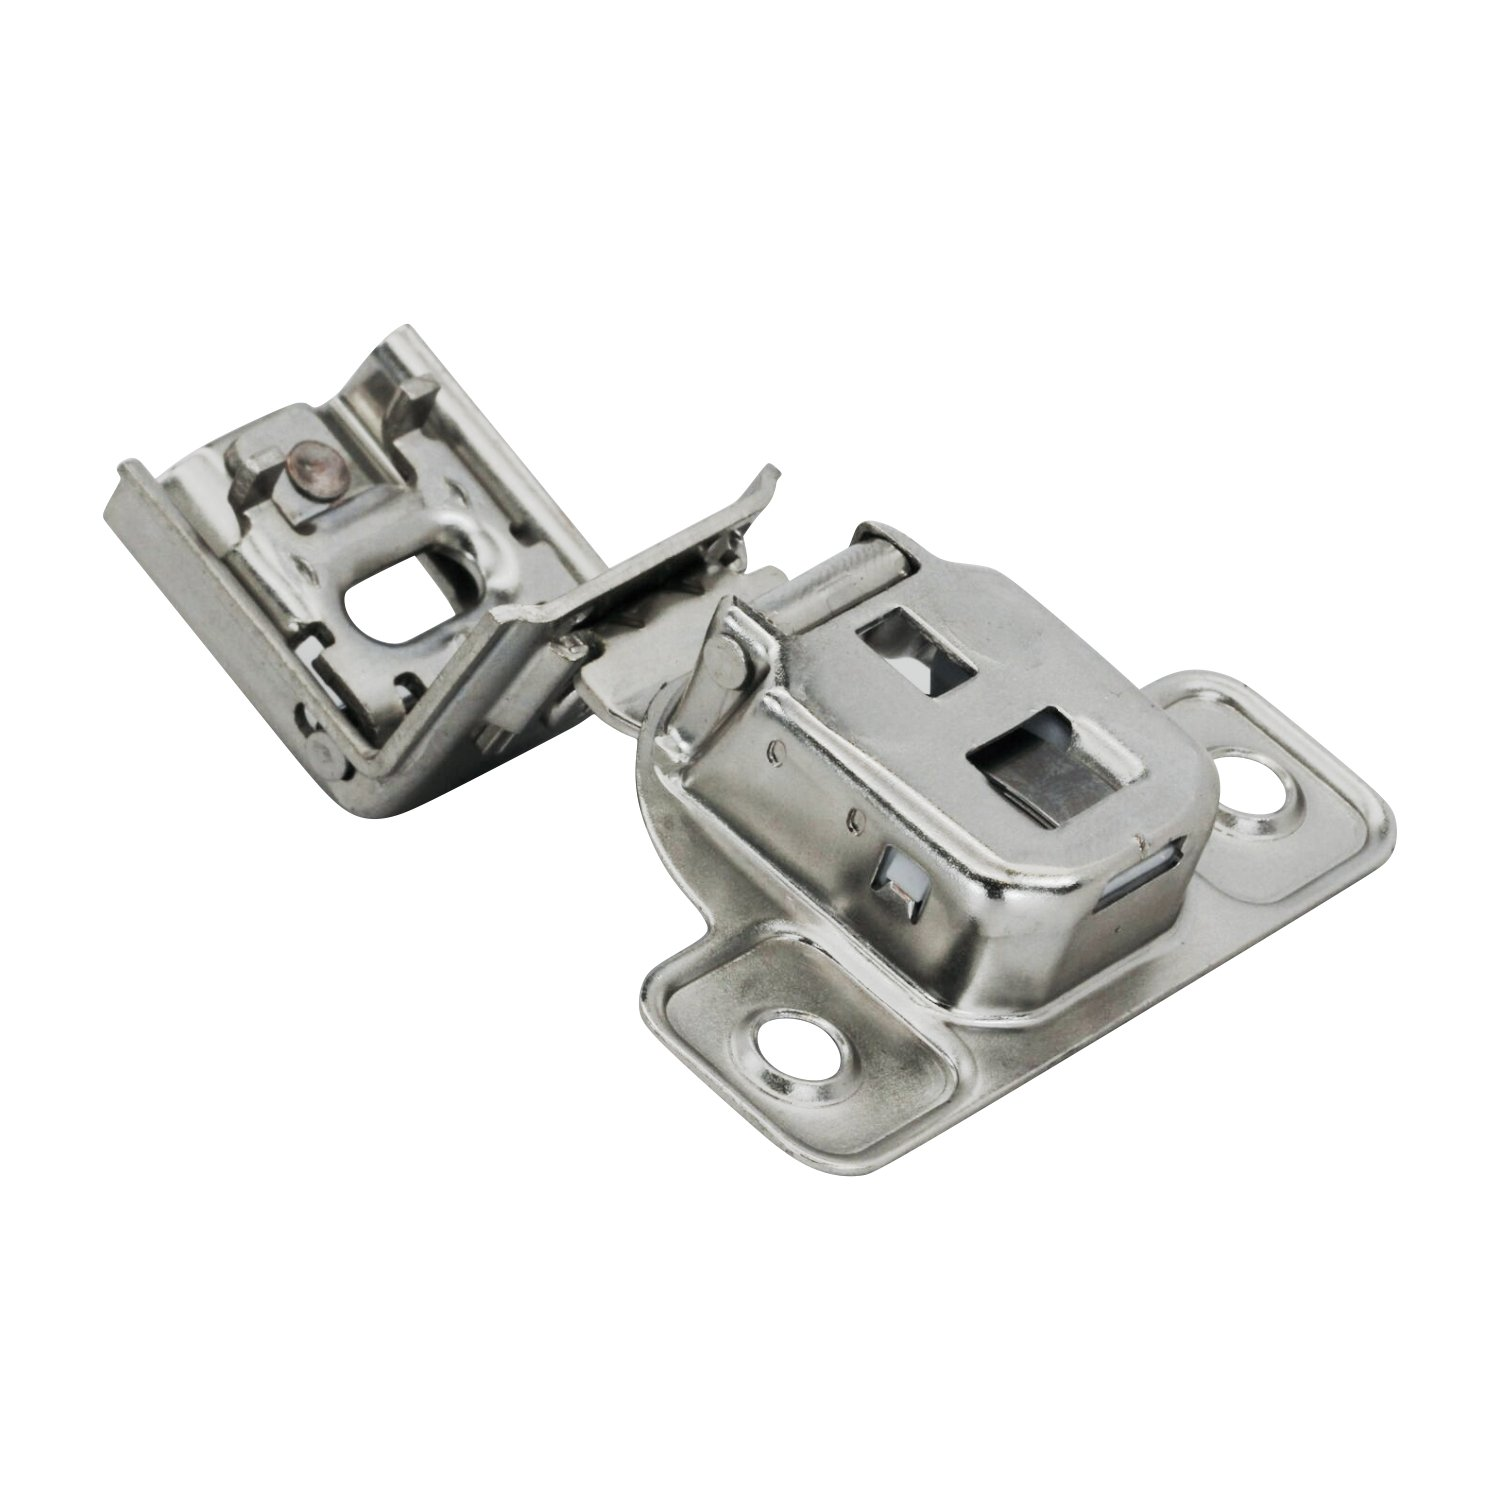 25 Pack Salice 106 Degree Silentia 1-3/8'' Overlay Screw On Soft Close Cabinet Hinge with 2 Cam Adjustment CUP3CD9 by Rok (Image #4)